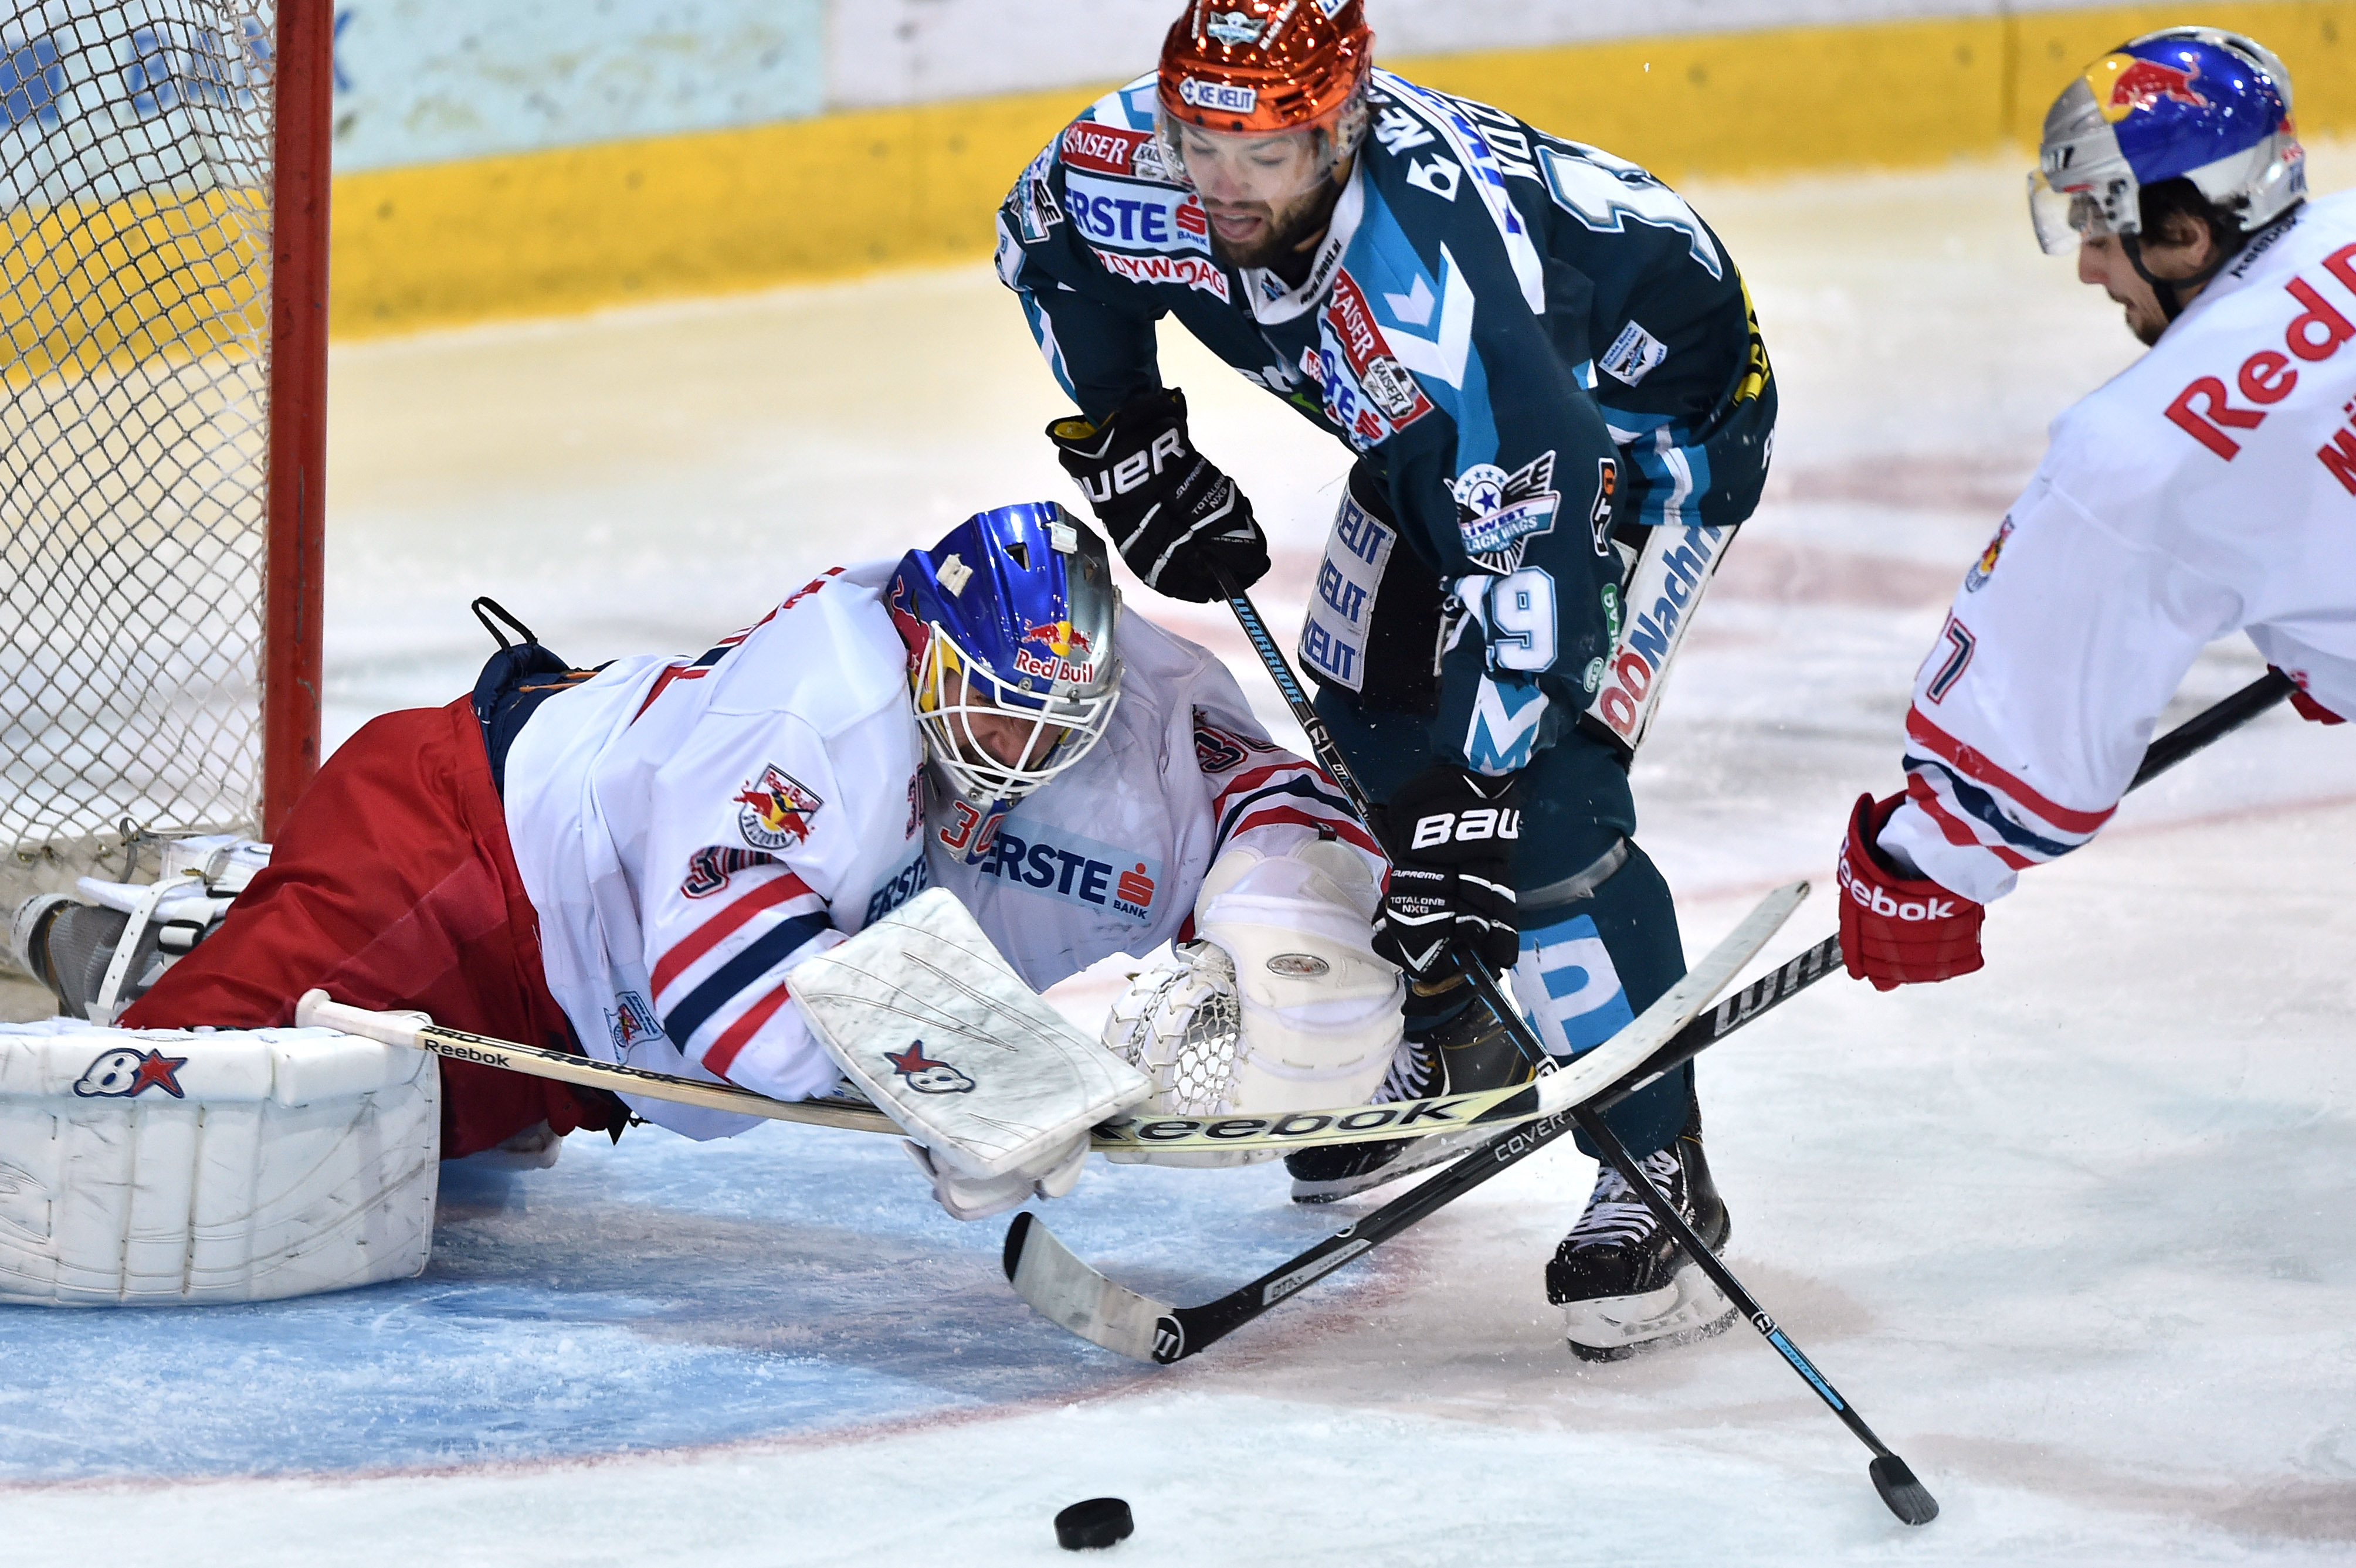 ICE HOCKEY – Black Wings vs EC RBS